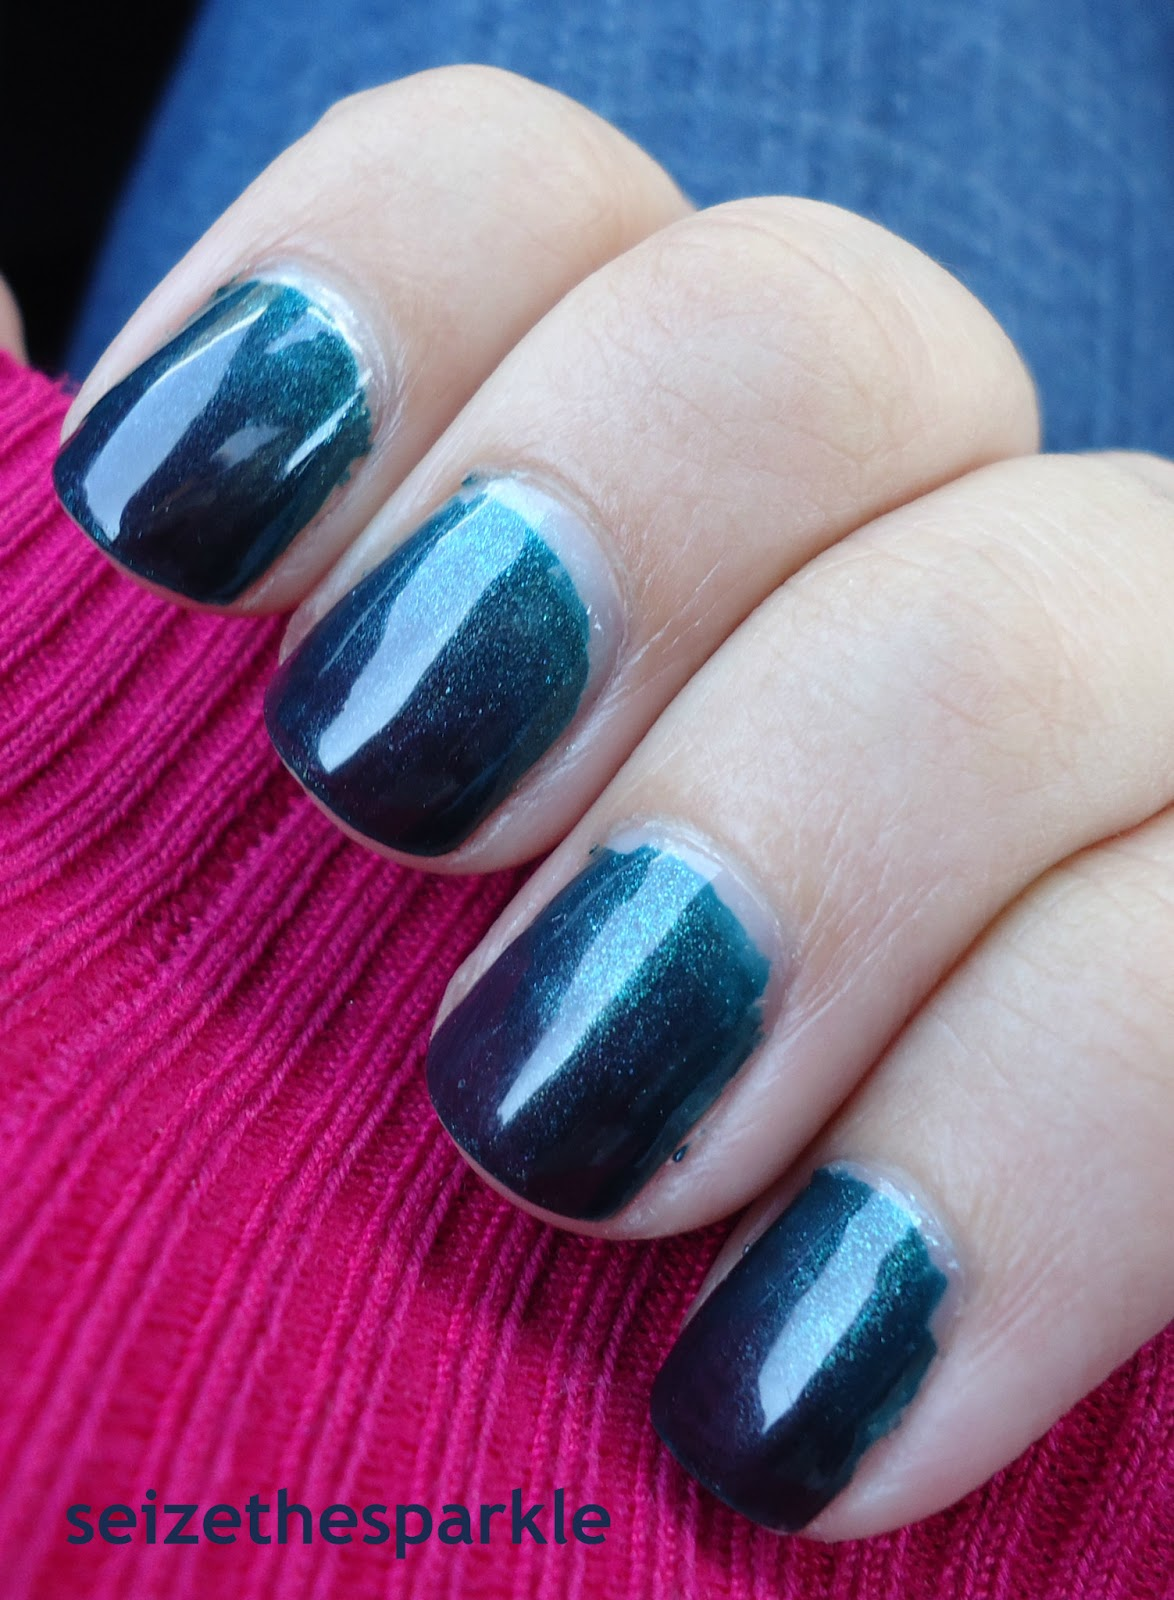 Teal Gradient Manicure